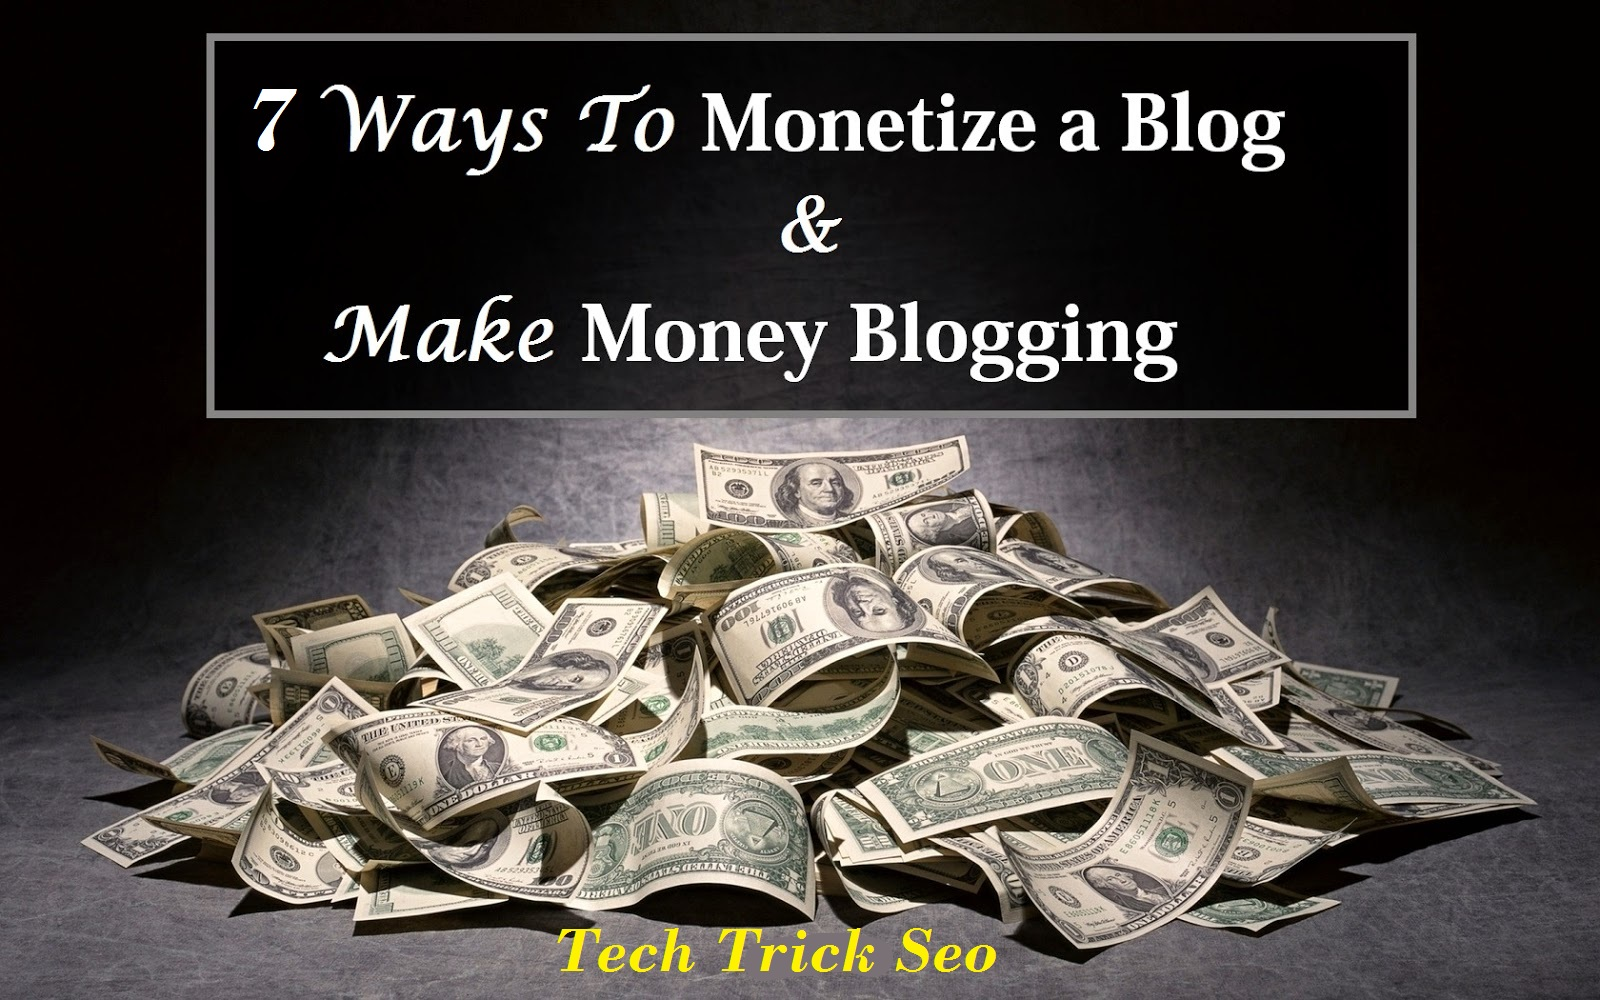 7 Best Ways To Monetize Your Blog Effectively & Make Money Blogging